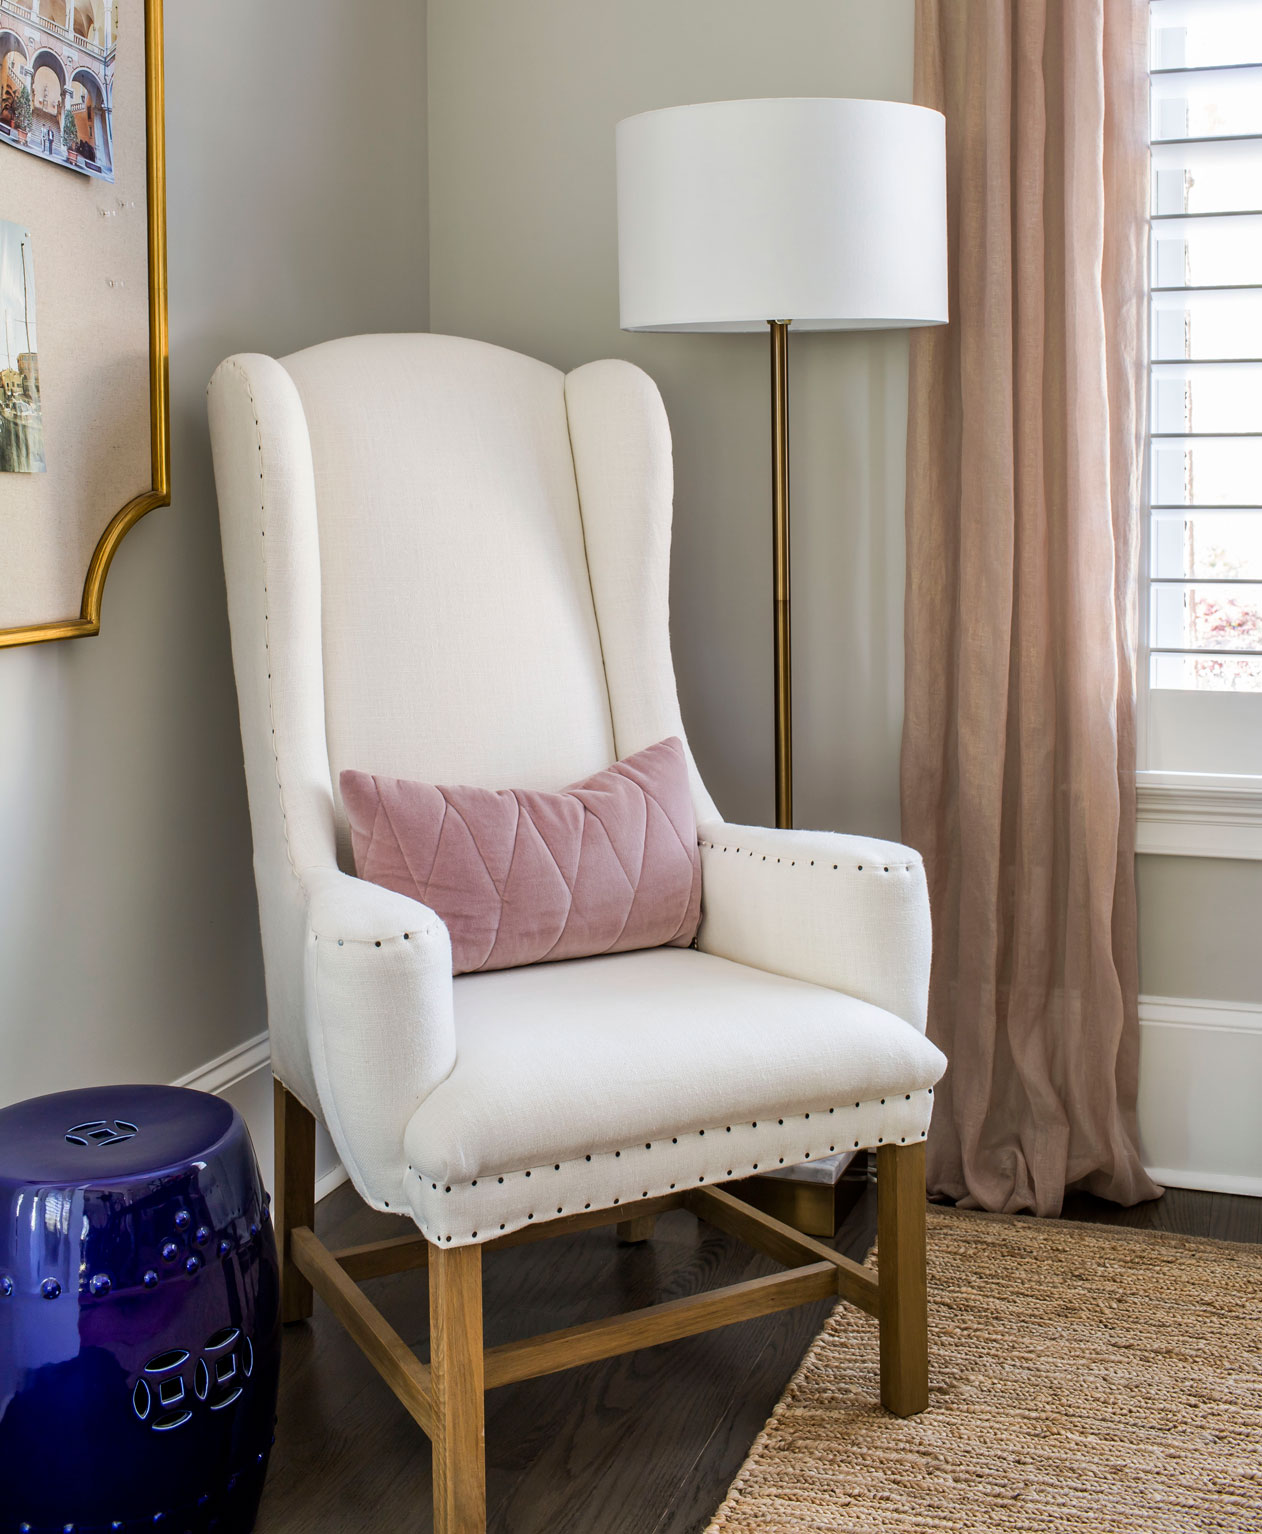 Ivory upholstered chair with wooden legs and blue side table in corner of home office